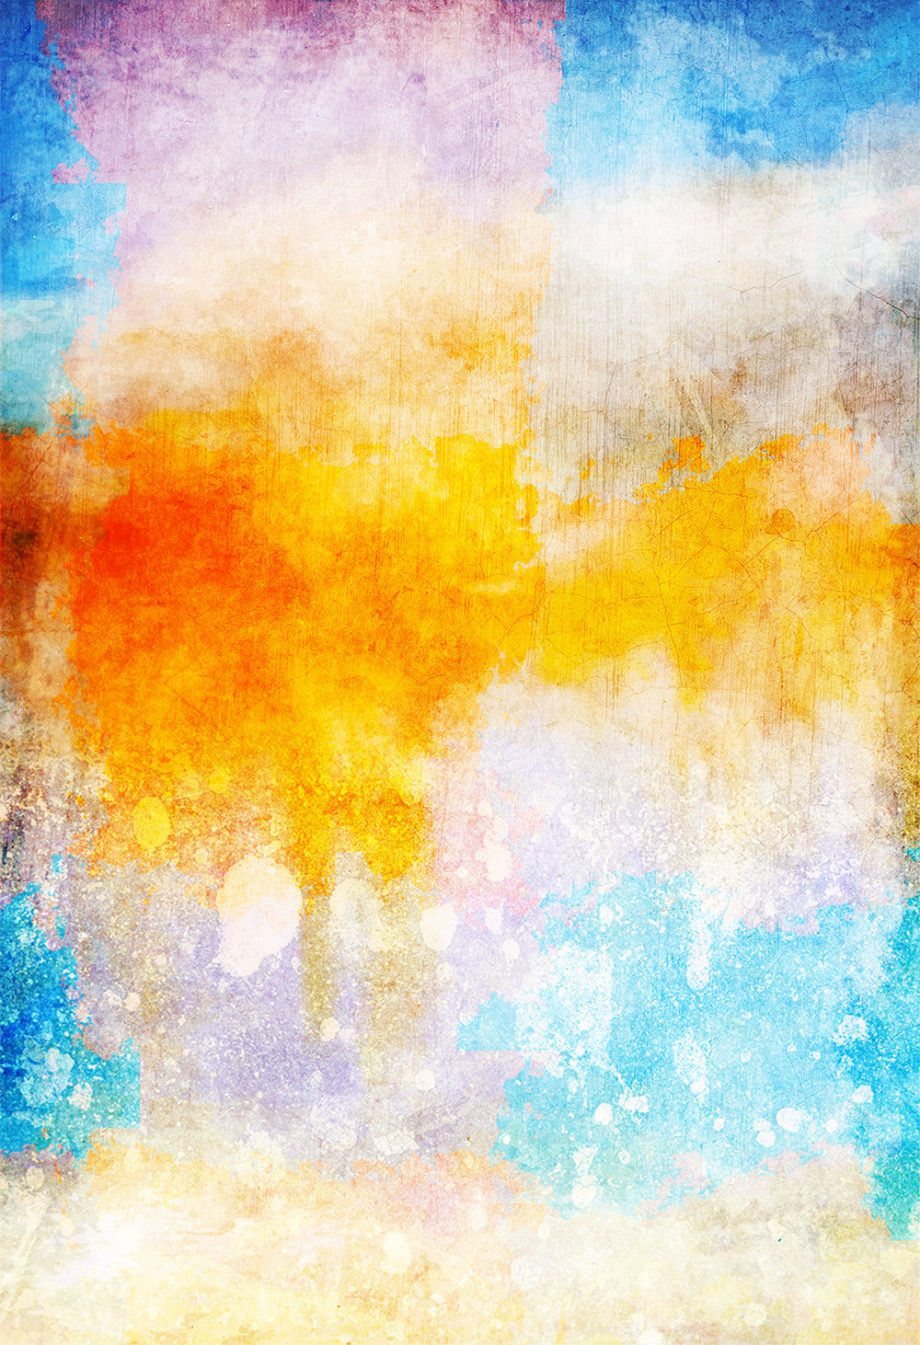 Abstract Art Print Abstract Clouds Decor Giclee Print on Cotton Canvas and Paper Canvas Poster Home Wall Art